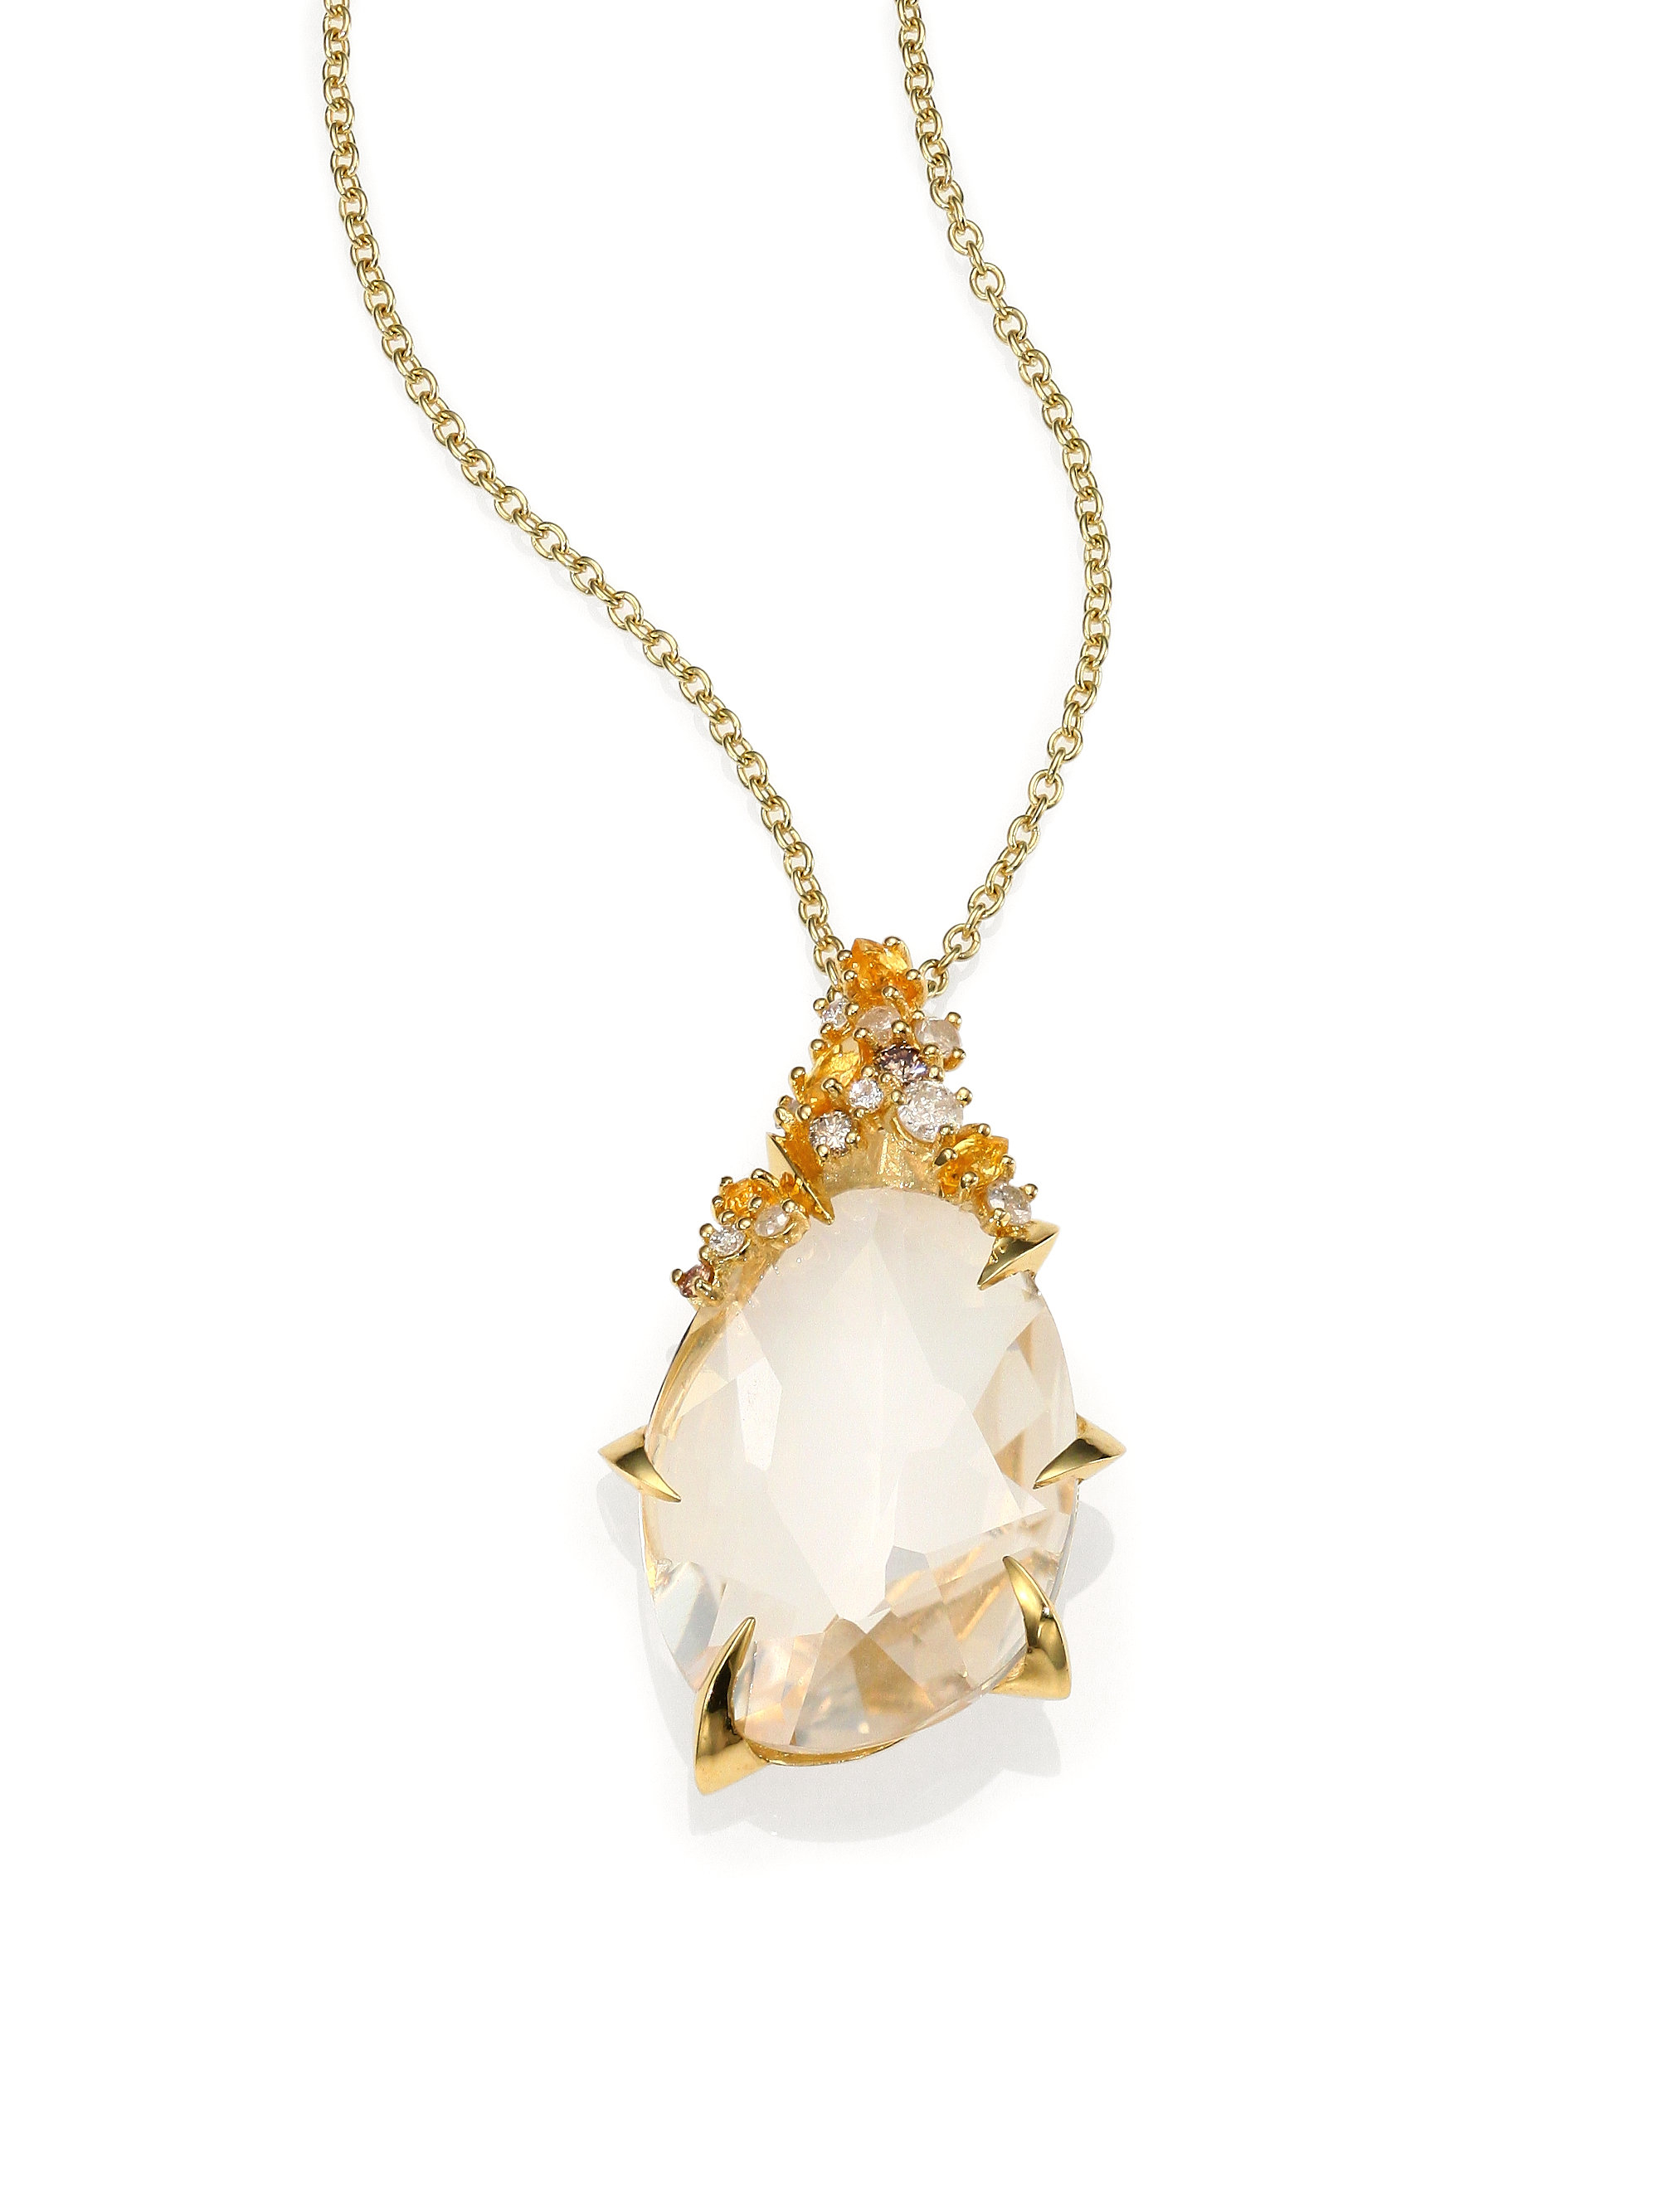 yellow sapphire necklace - photo #6